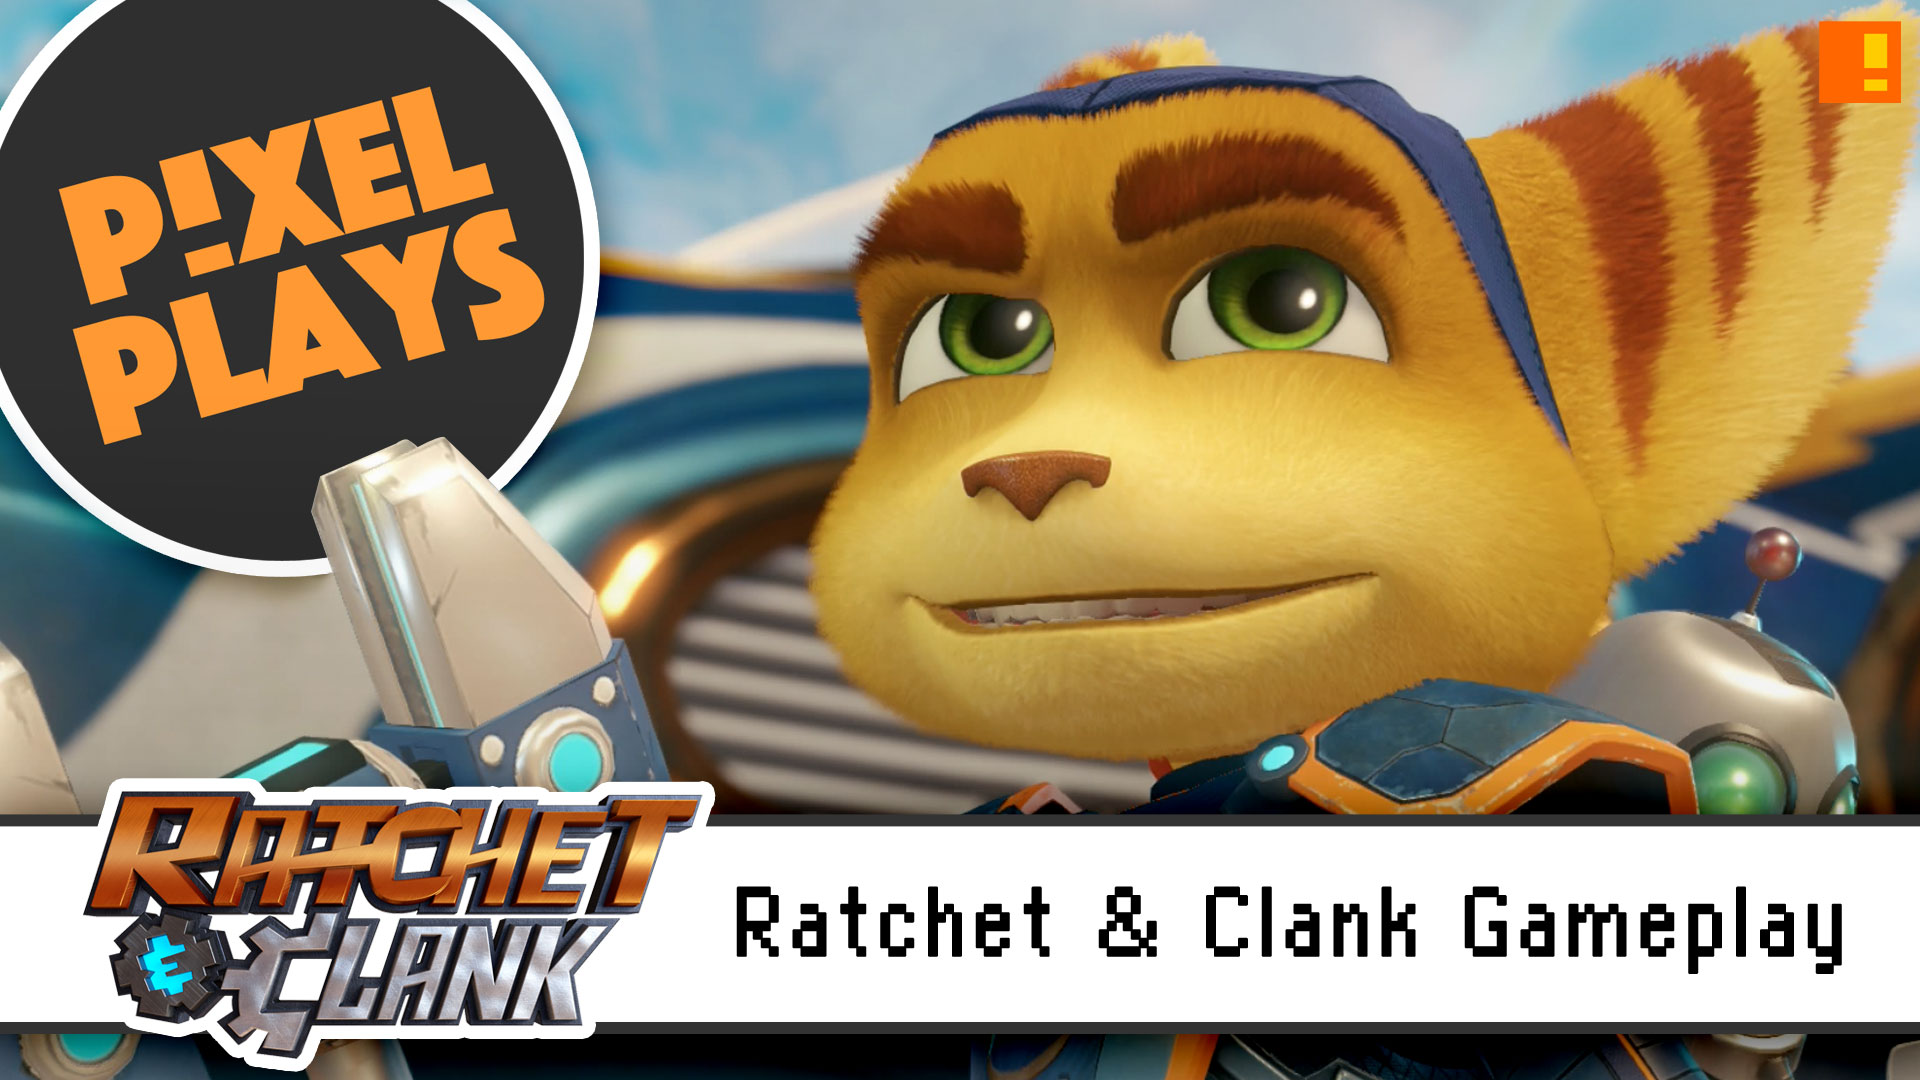 pixel plays, ratchet Clank, ratchet and clank movie trailer 2016, ratchet and clank ps4 trailer, ratchet and clank ps4 walkthrough part 1, ratchet and clank ps2, ratchet and clank gameplay, ratchet and clank up your arsenal, ratchet and clank cutscenes, ratchet and clank movie, ratchet and clank ps4 gameplay, ratchet and clank a crack in time, ratchet and clank all 4 one, ratchet and clank all cutscenes, ratchet and clank all bosses, ratchet and clank all weapons, ratchet and clank a crack in time review, ratchet and clank a crack in time walkthrough part 1, ratchet and clank all 4 one walkthrough part 1, ratchet and clank all gold bolts, ratchet and clank all 4 one cutscene, ratchet and clank bosses, ratchet and clank before you buy, ratchet and clank best weapons, ratchet and clank captain qwark, ratchet and clank death by disco, ratchet and clank movie, ratchet and clank ps4, ratchet and clank release date, ratchet and clank wiki, ratchet and clank into the nexus, ratchet and clank up your arsenal, ratchet and clank ps3, ratchet and clank trailer, ratchet and clank going commando, ratchet and clank ps4 walkthrough, ratchet and clank movie review, ratchet and clank games, ratchet and clank ps4 review, ratchet and clank a crack in time, ratchet and clank all 4 one, ratchet and clank all games, ratchet and clank amazon, ratchet and clank a crack in time cheats, ratchet and clank armor, ratchet and clank all 4 one review, ratchet and clank a crack in time review ratchet and clank a crack in time trophies a new ratchet and clank game,